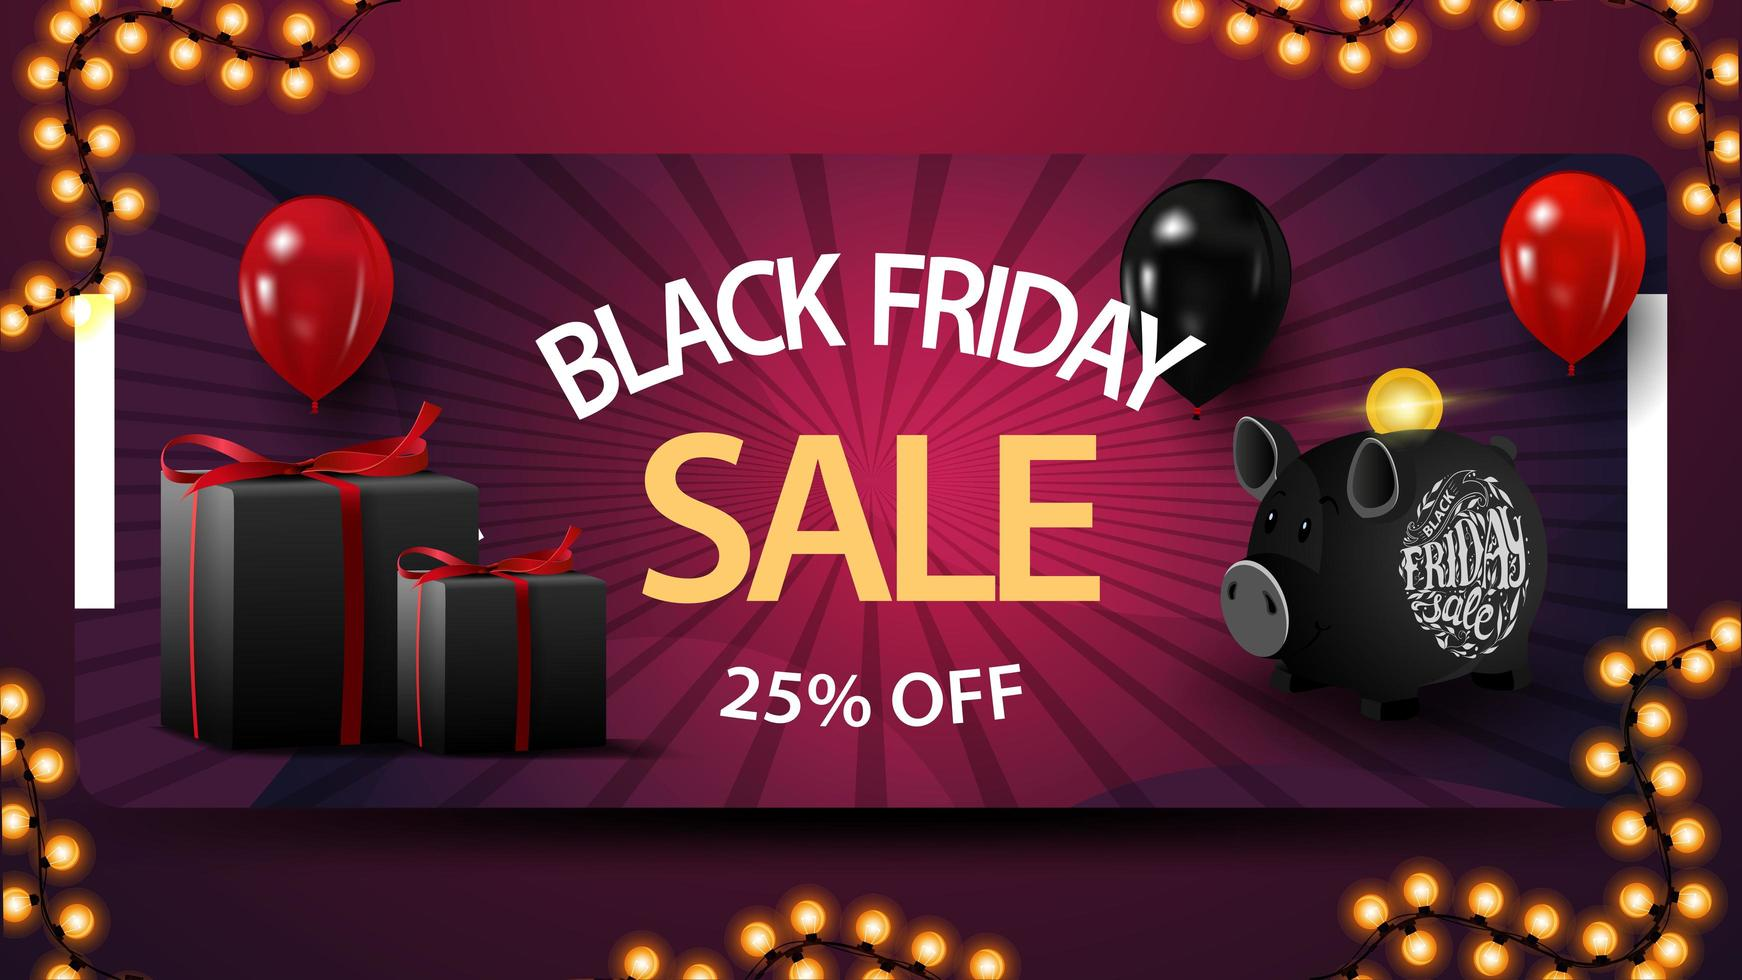 Black Friday sale, up to 25 off, discount banner with piggy bank, balloons and gifts. vector